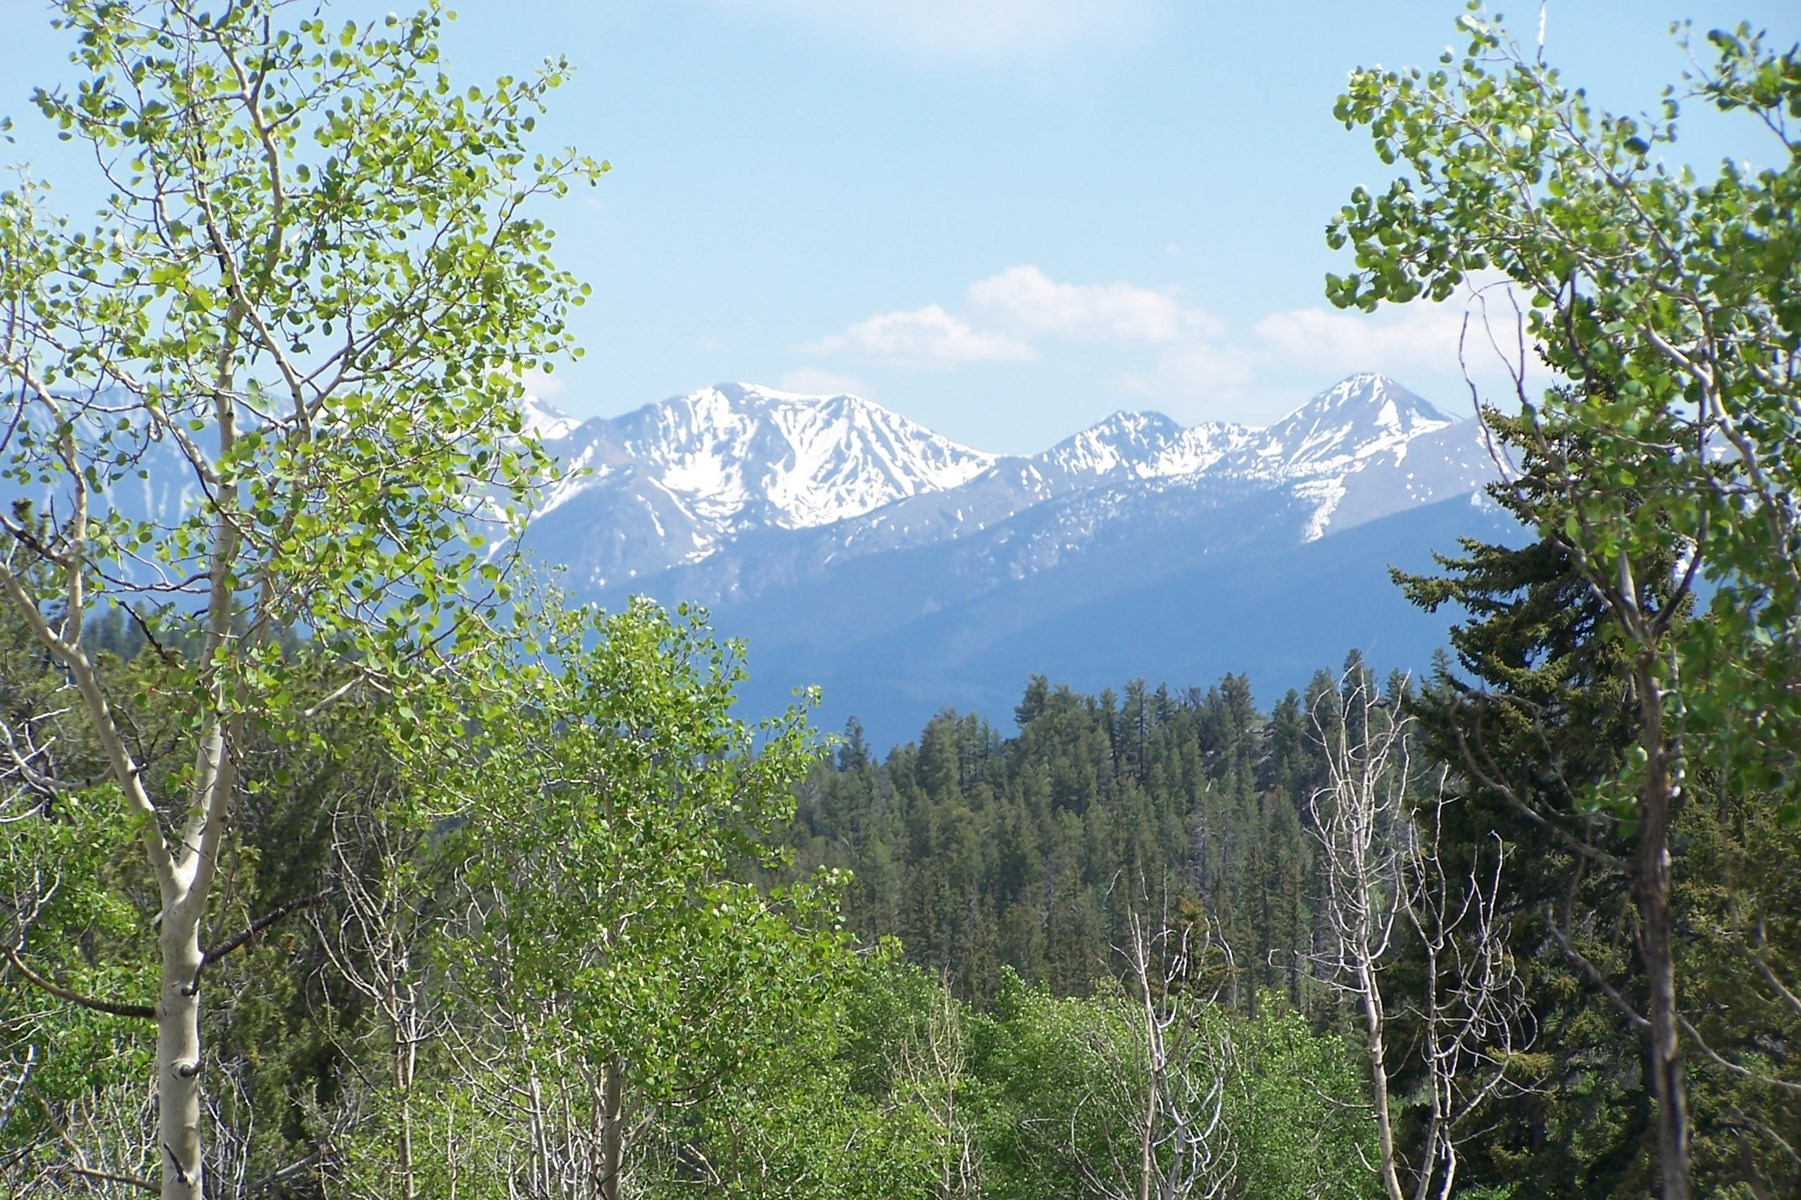 Mountain Property Colorado Chaffee County Private for Sale